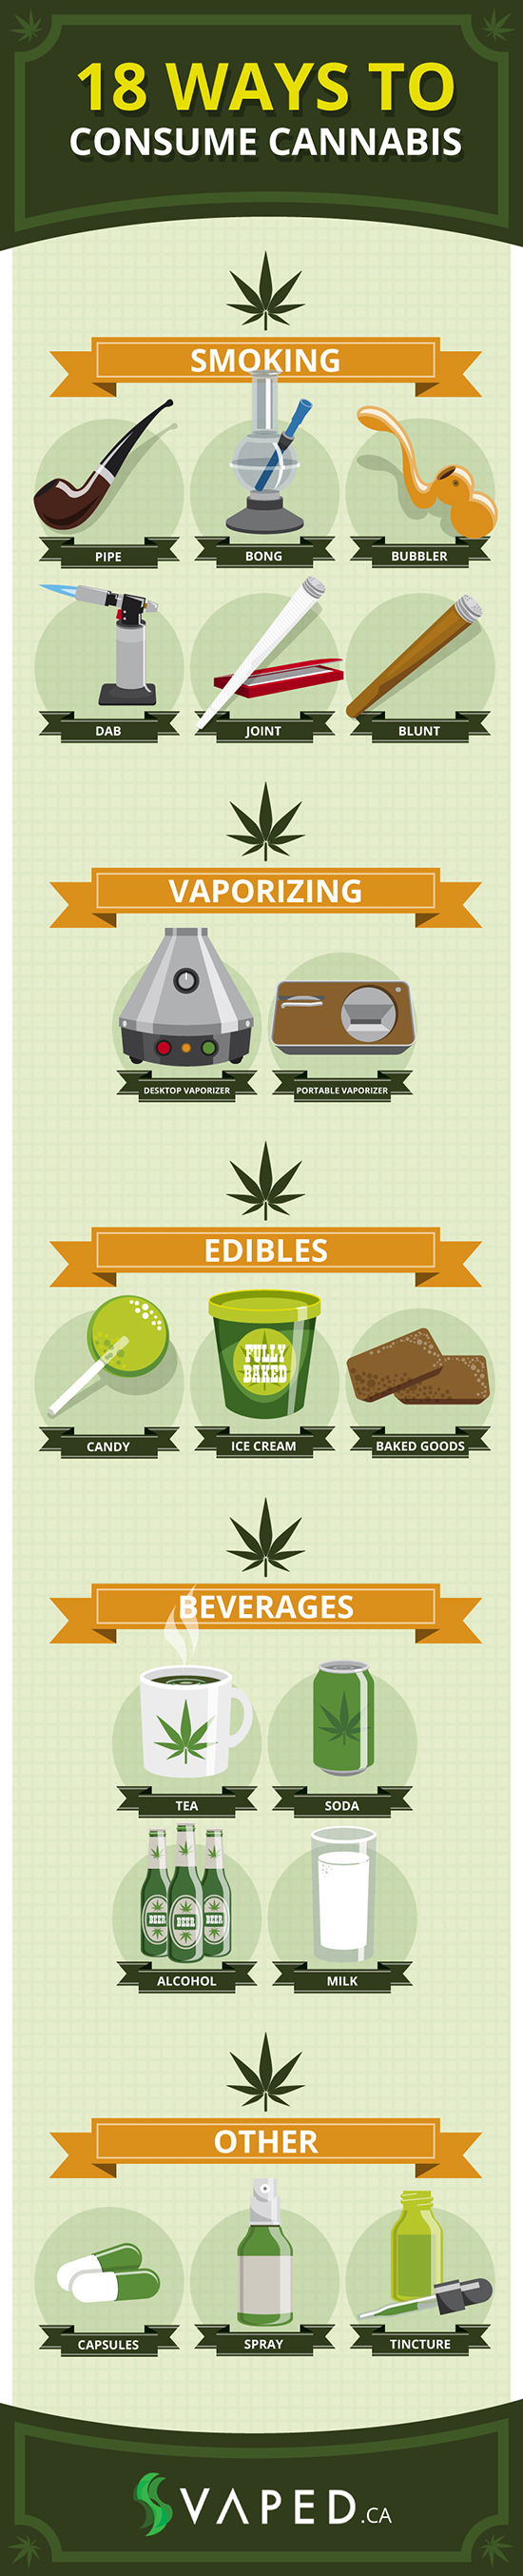 18 Ways To Consume Cannabis by Vaped.ca